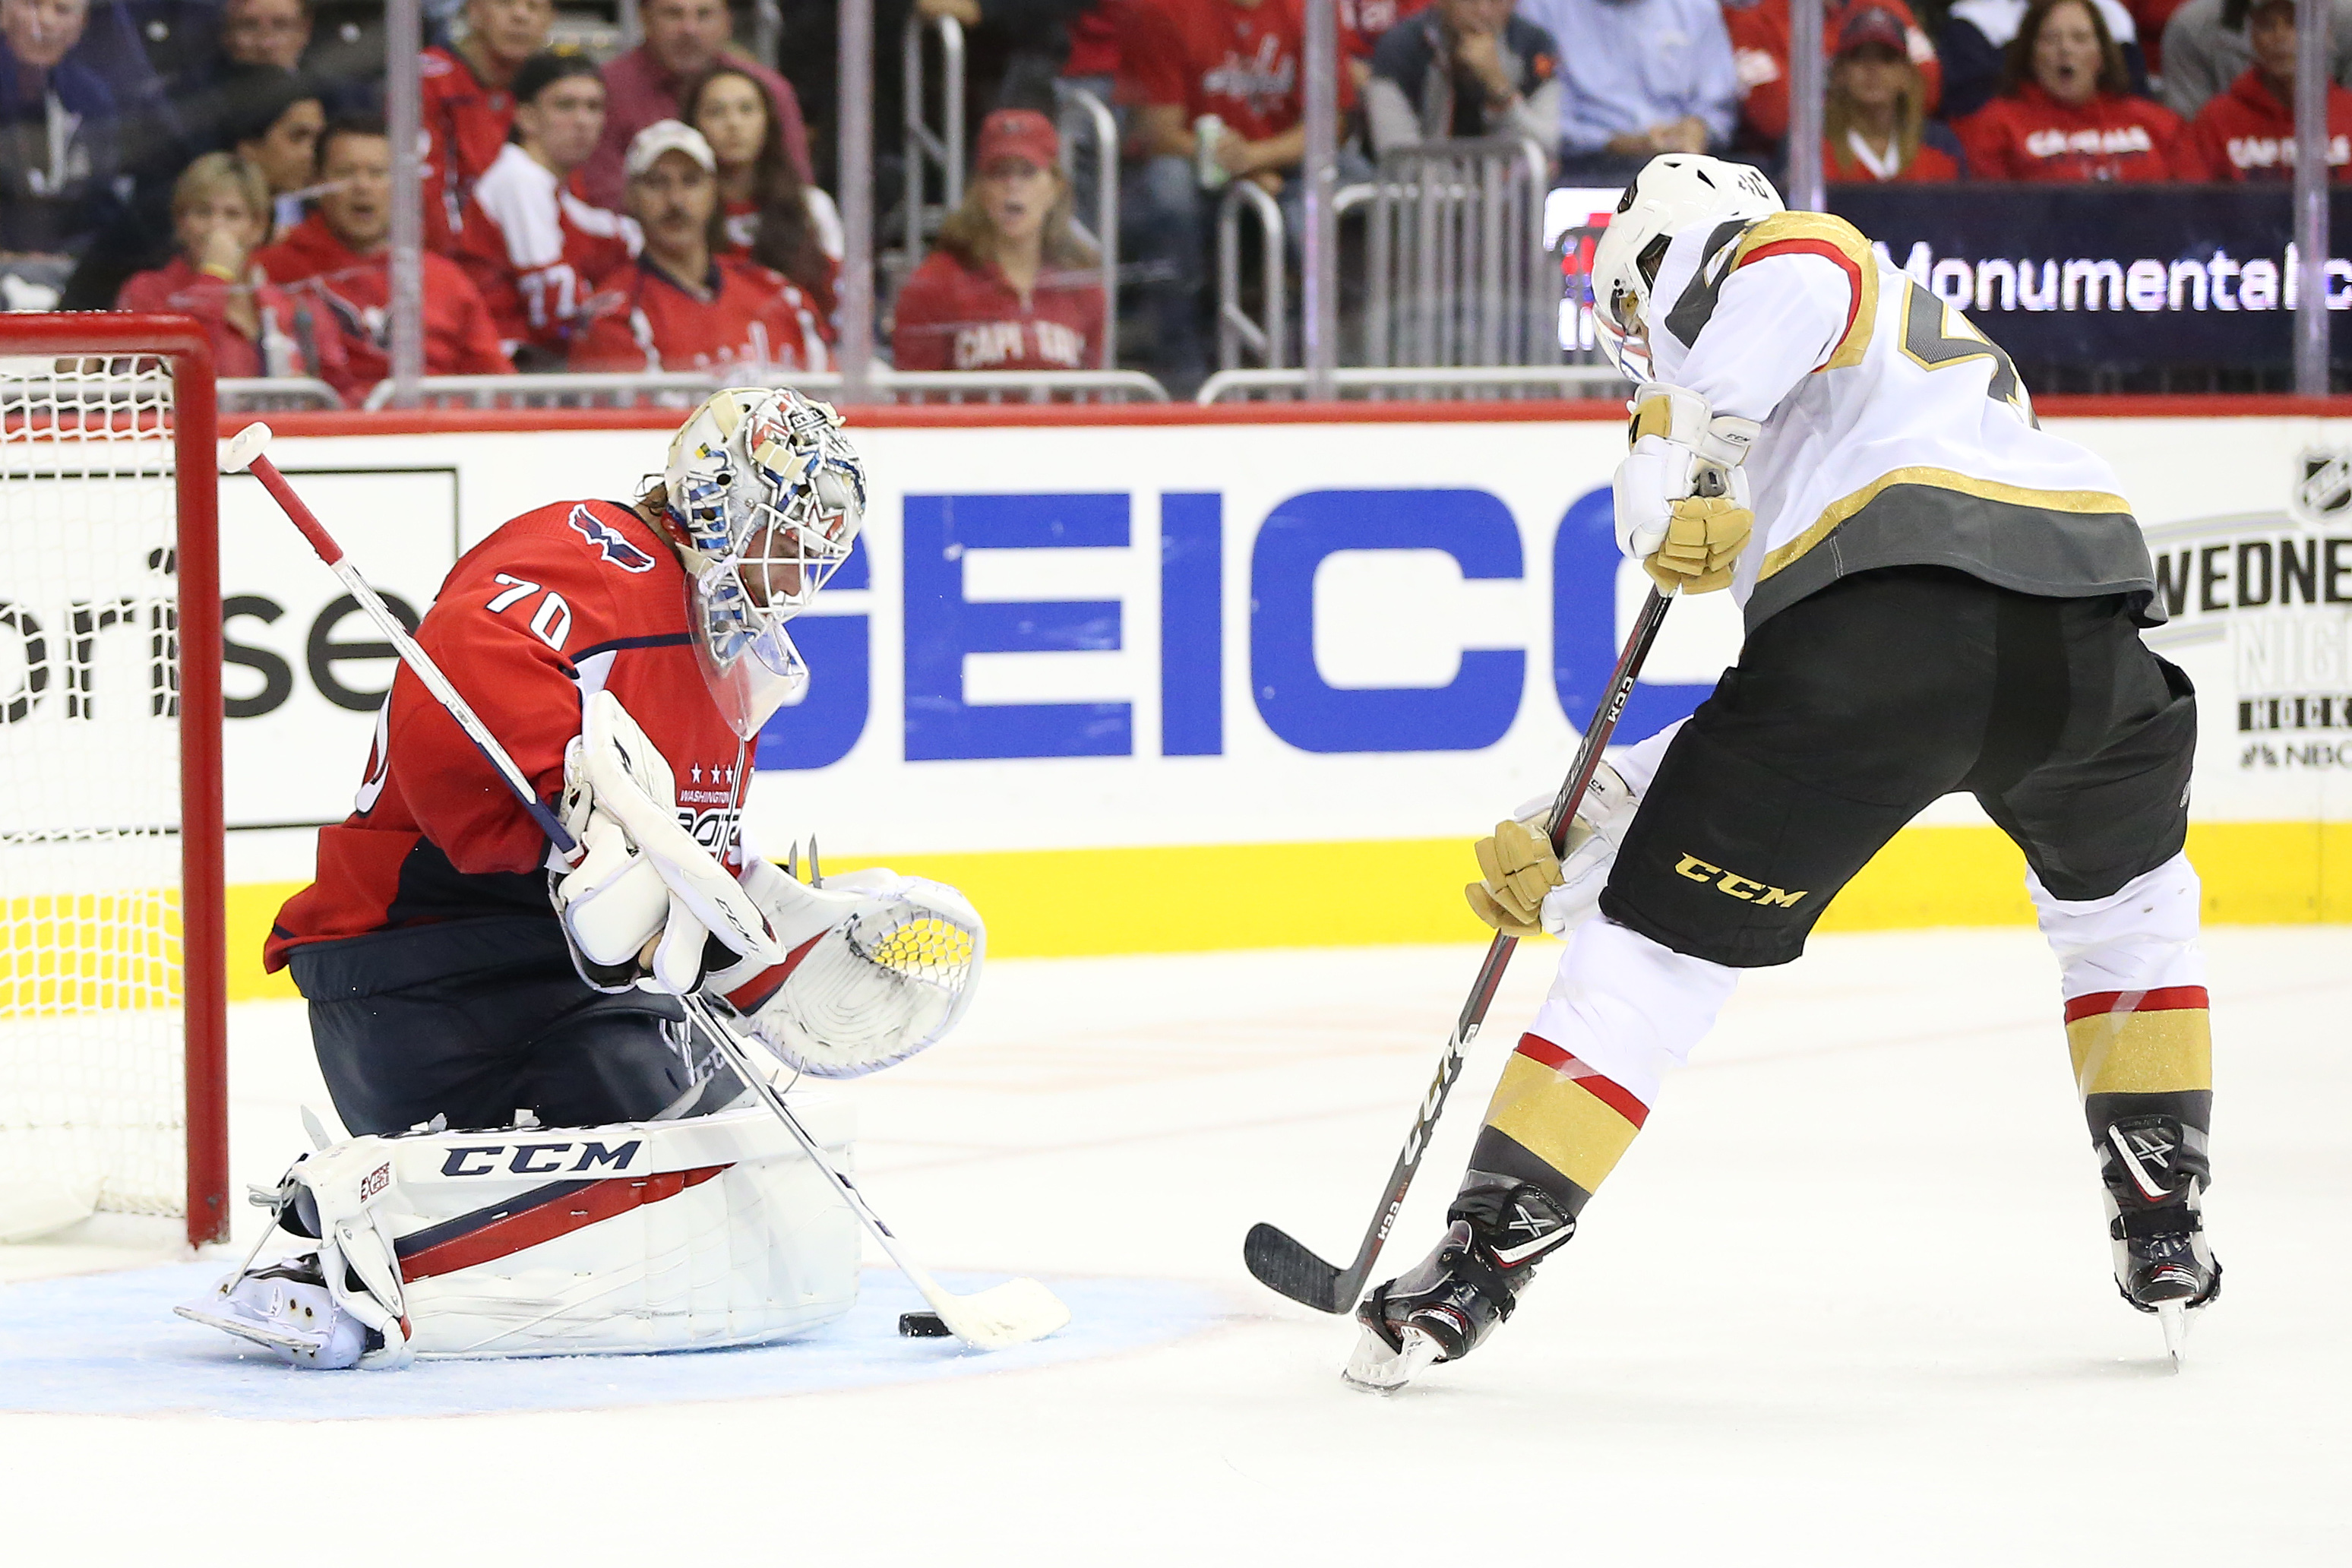 Nhl Goaltenders Are Worried About Their Safety With New Goalie